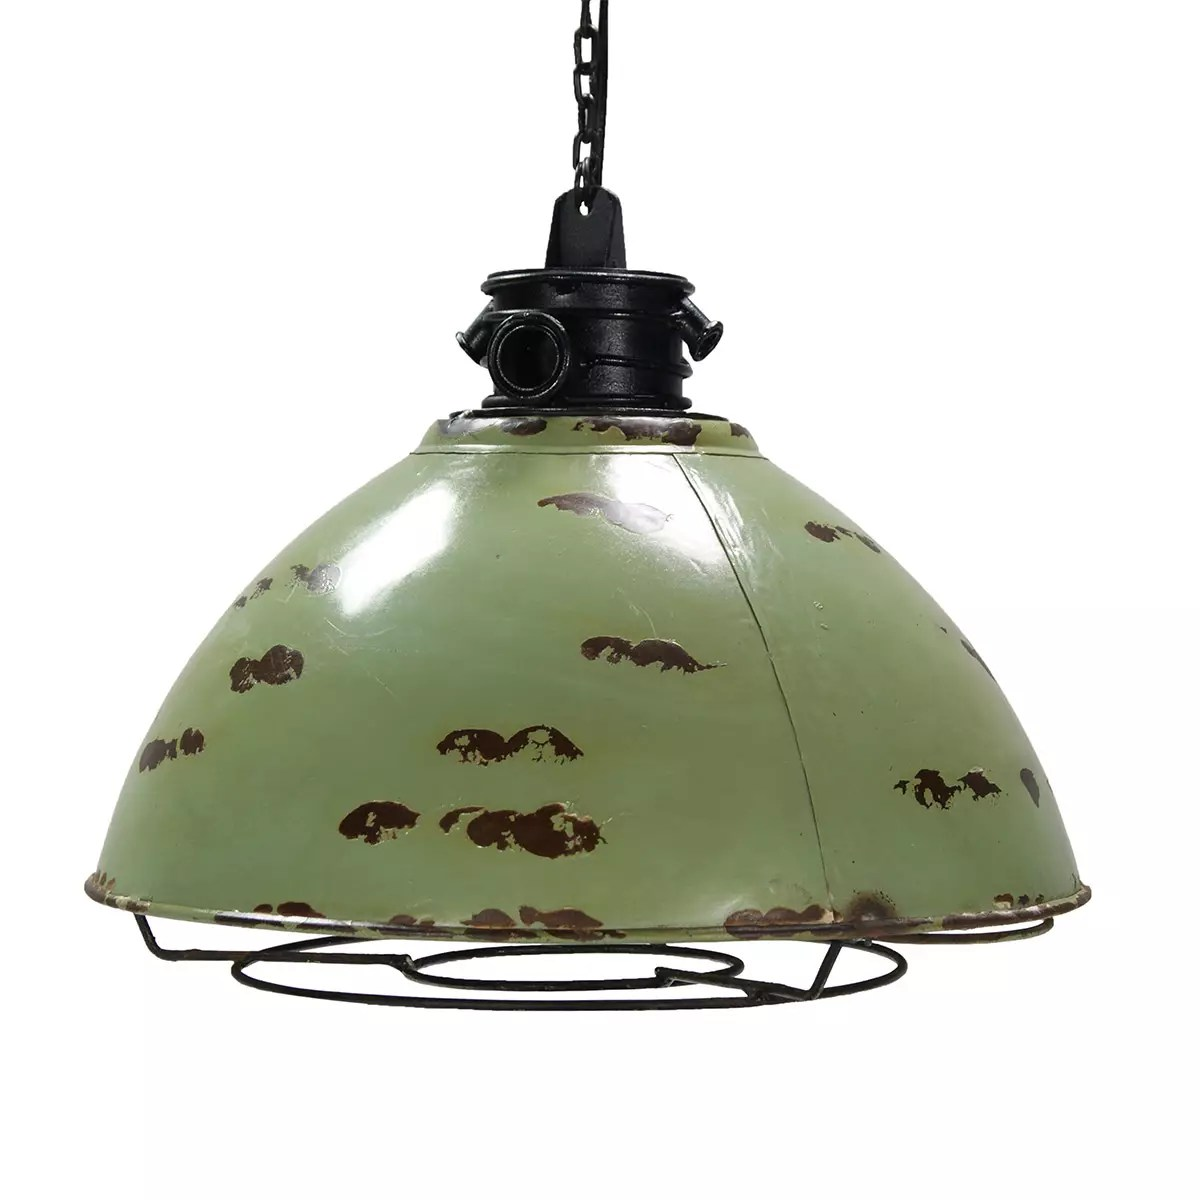 Lampe Suspension Style Industriel Collection De Lampes Detroit De Francisco Segarra